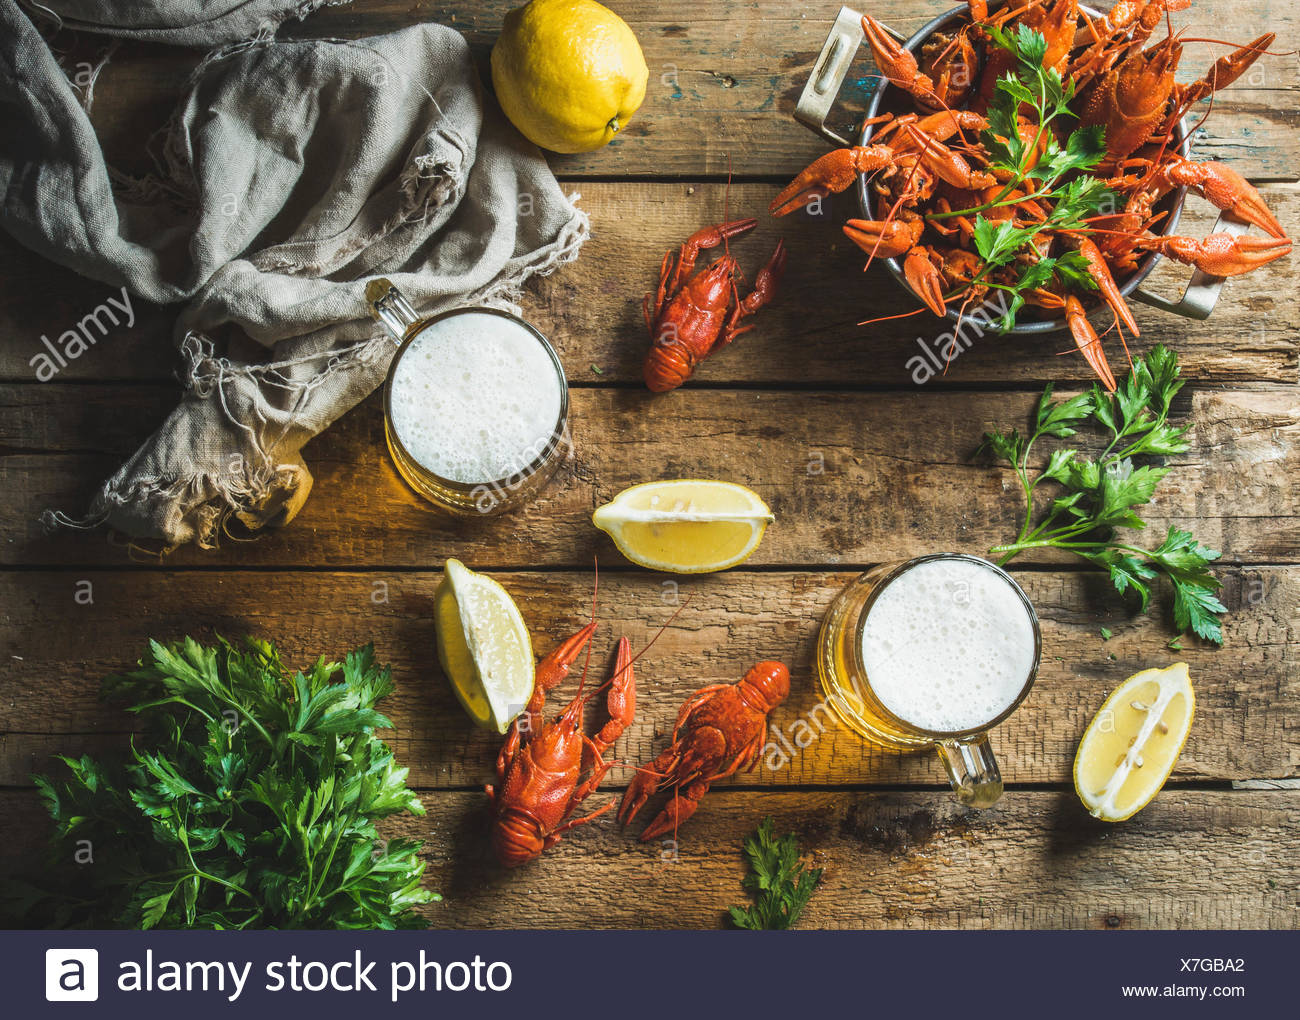 Two pints of wheat beer and boiled crayfish with lemon and parsley over old wooden rustic background, top view, horizontal compo - Stock Image